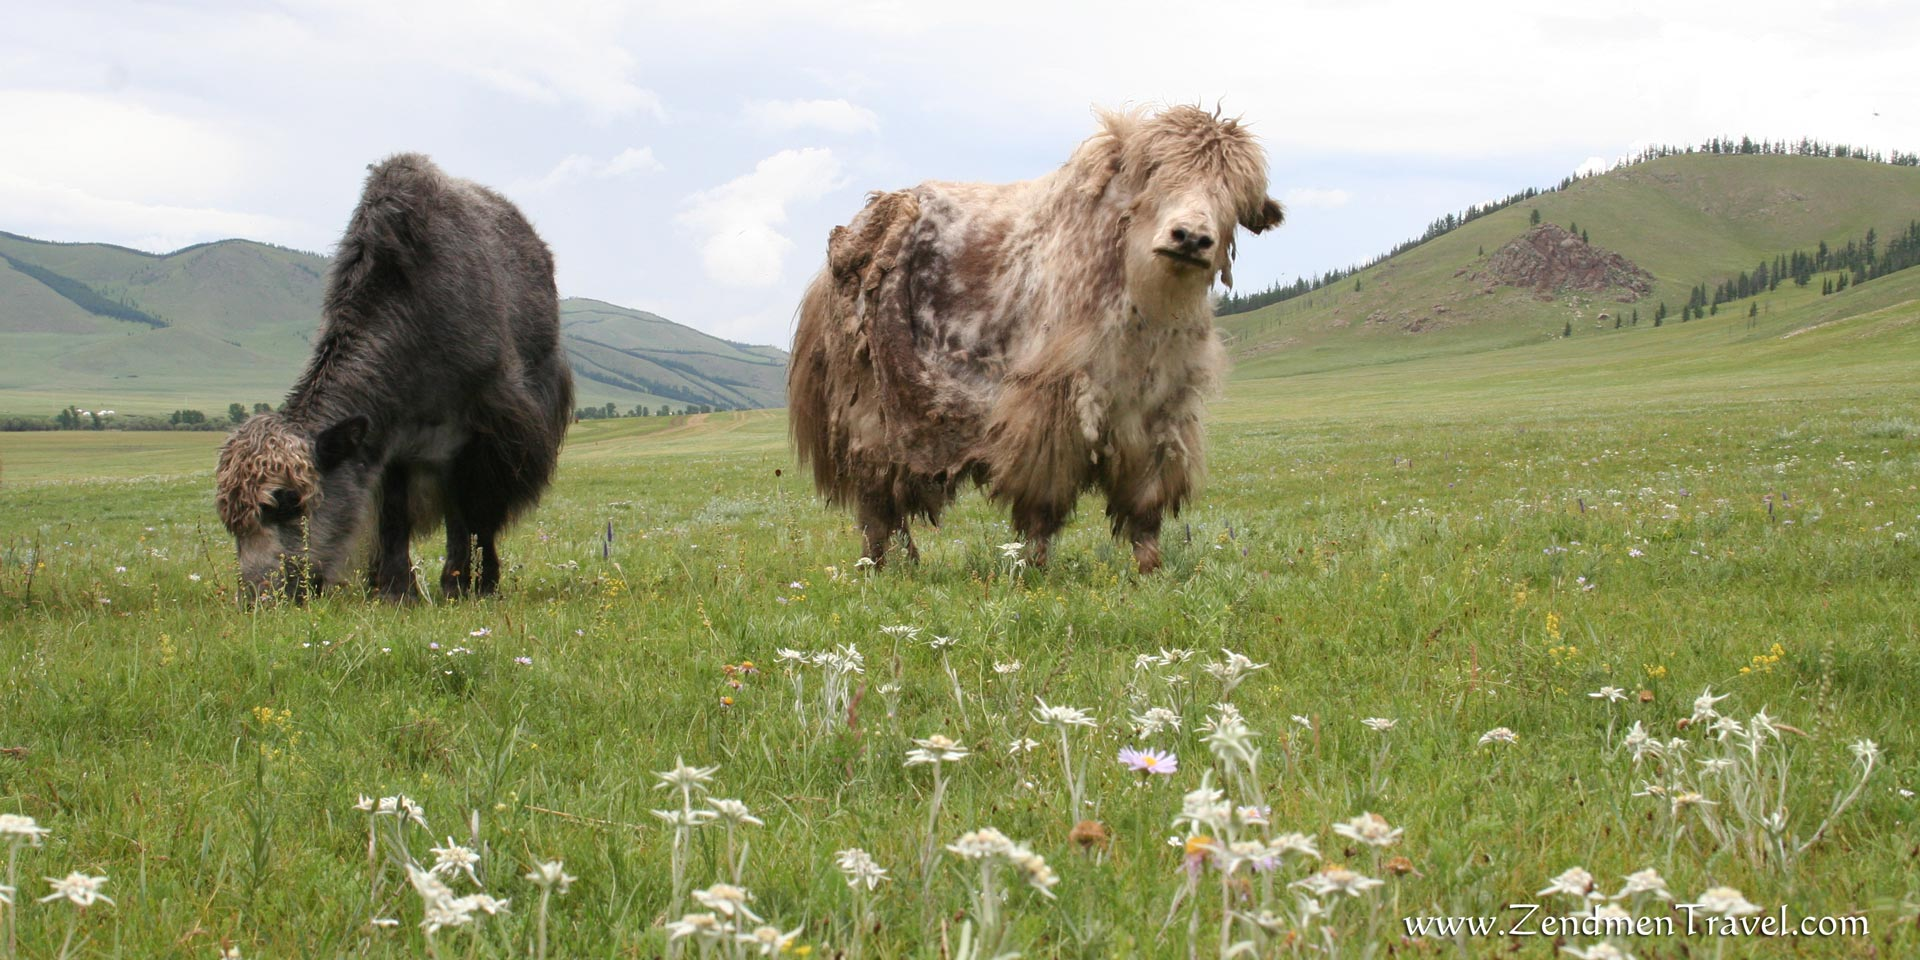 The Incredible Adventures of the Yak in the USA